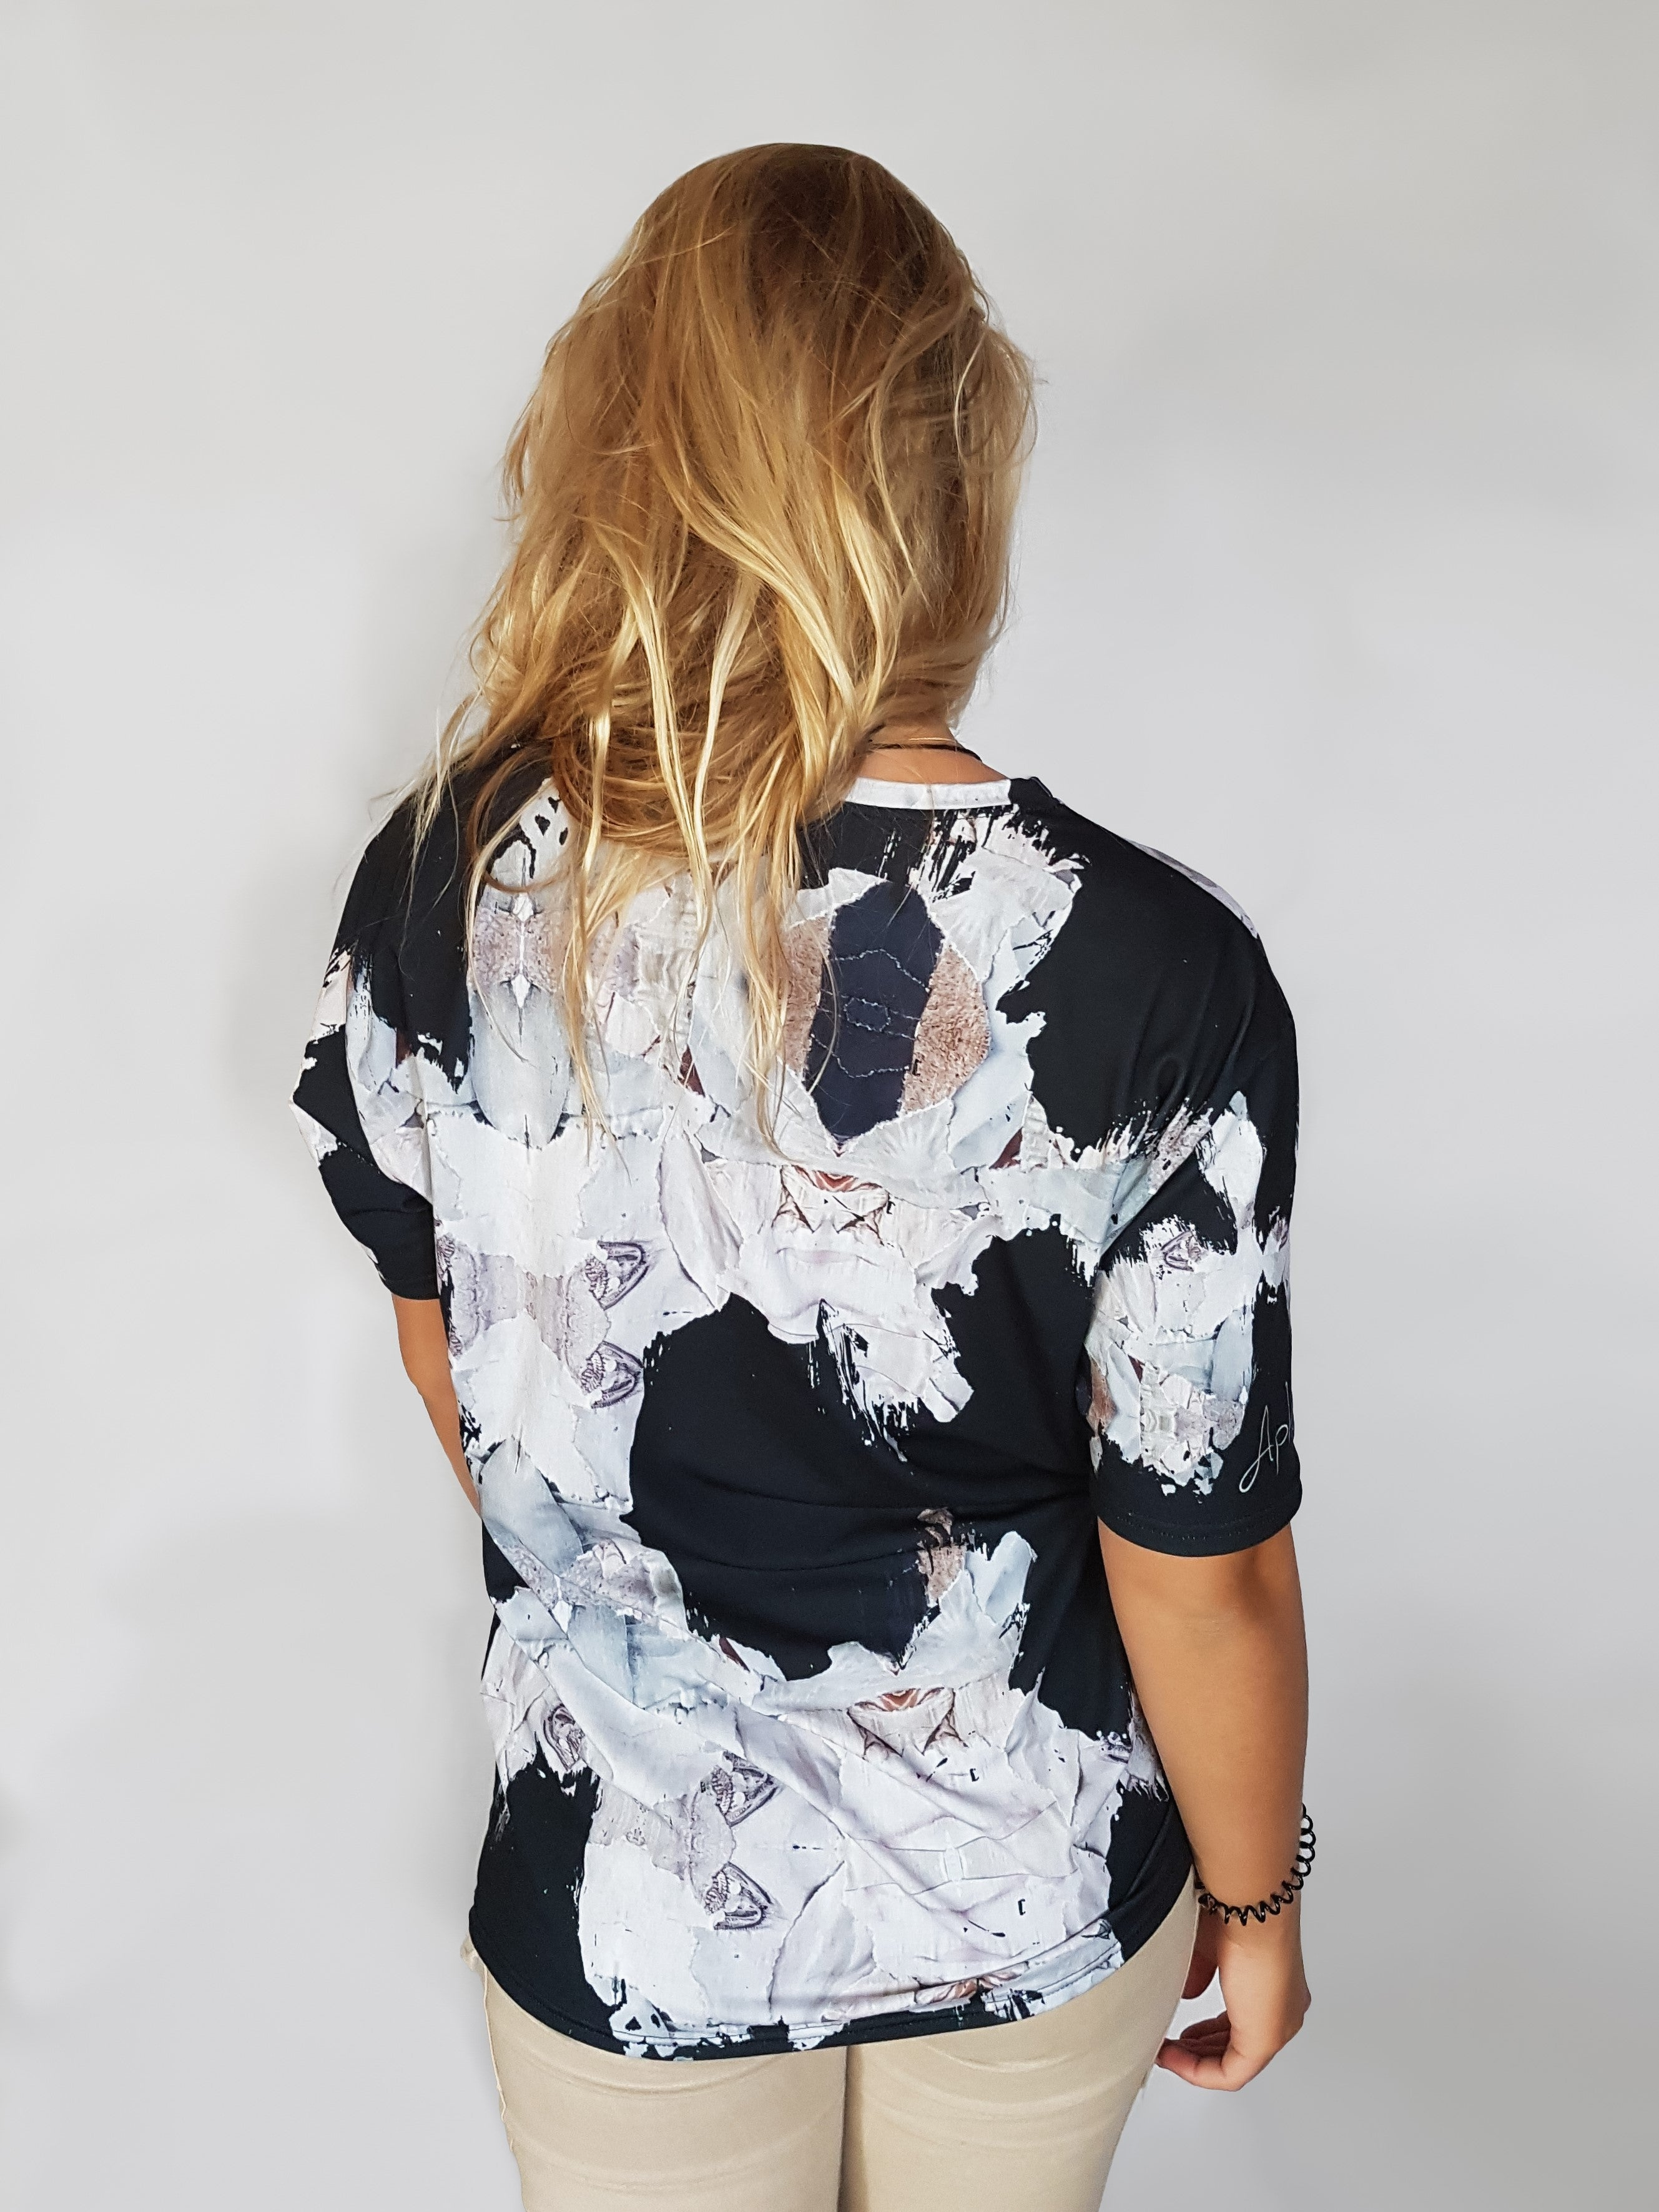 Black Glamour art shirt with paper pieces giving a vintage modern aesthetic backside